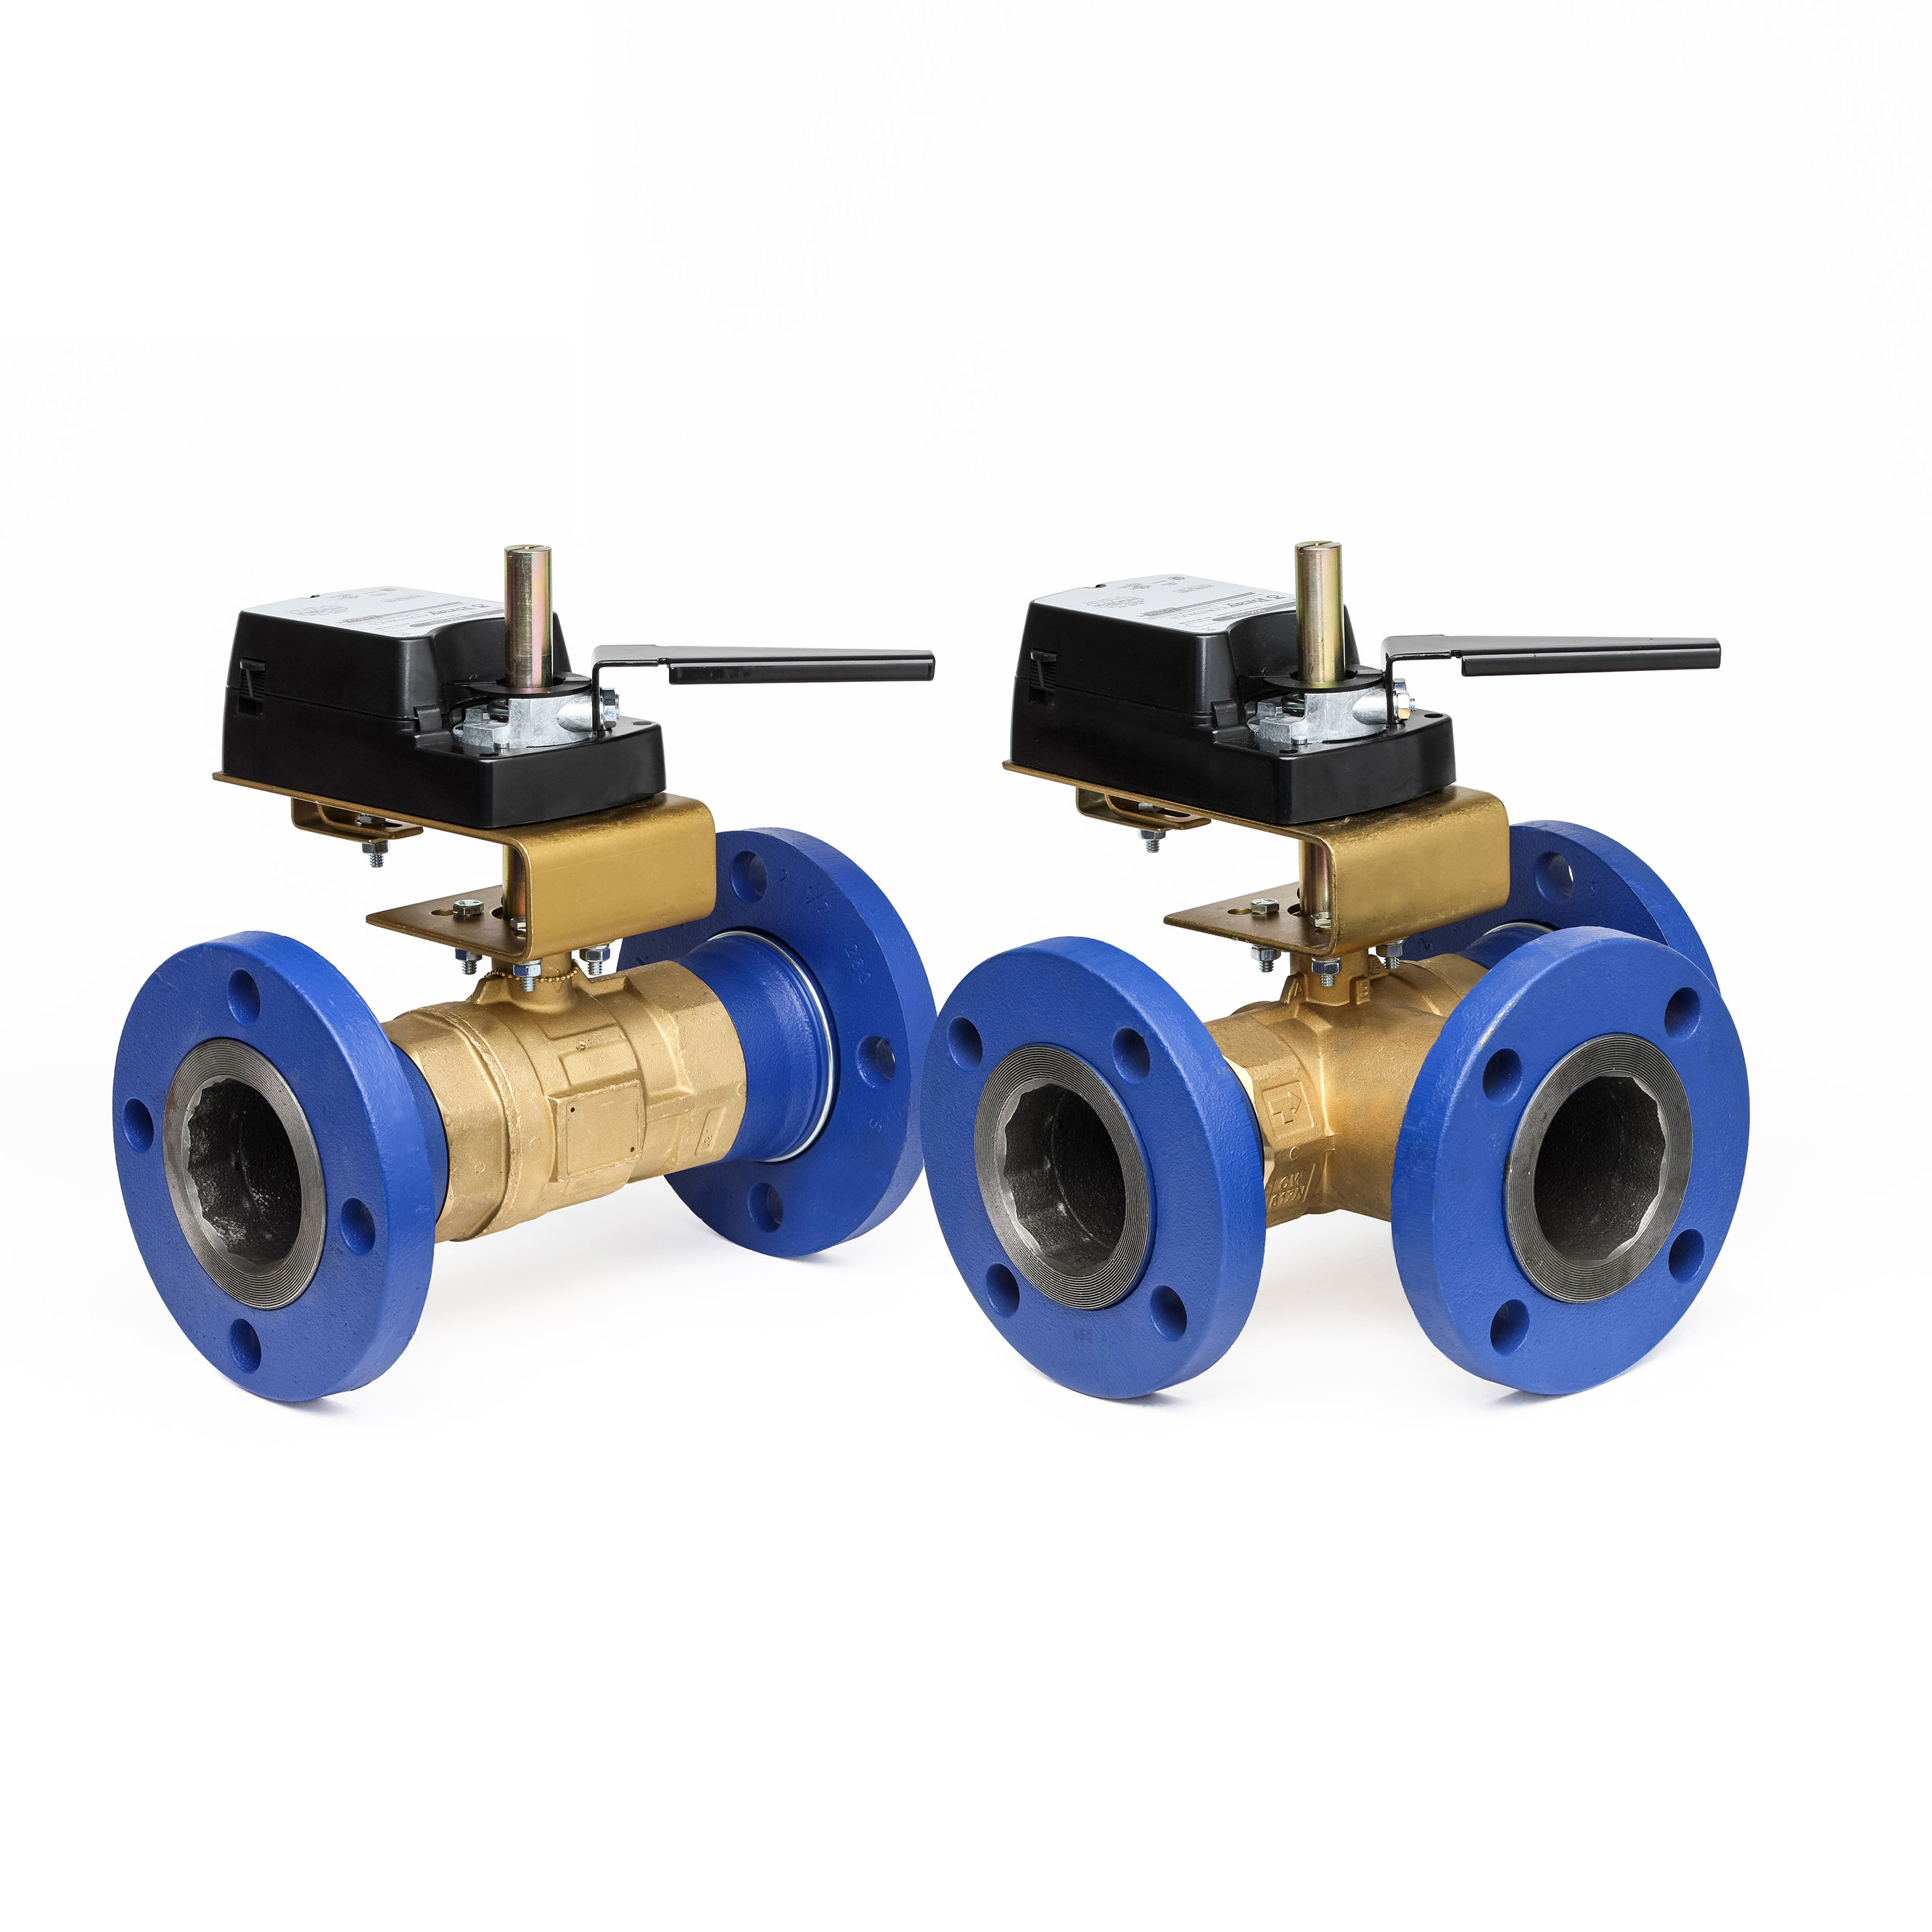 STM Characterized Flanged Ball Valves - Bray Commercial Division